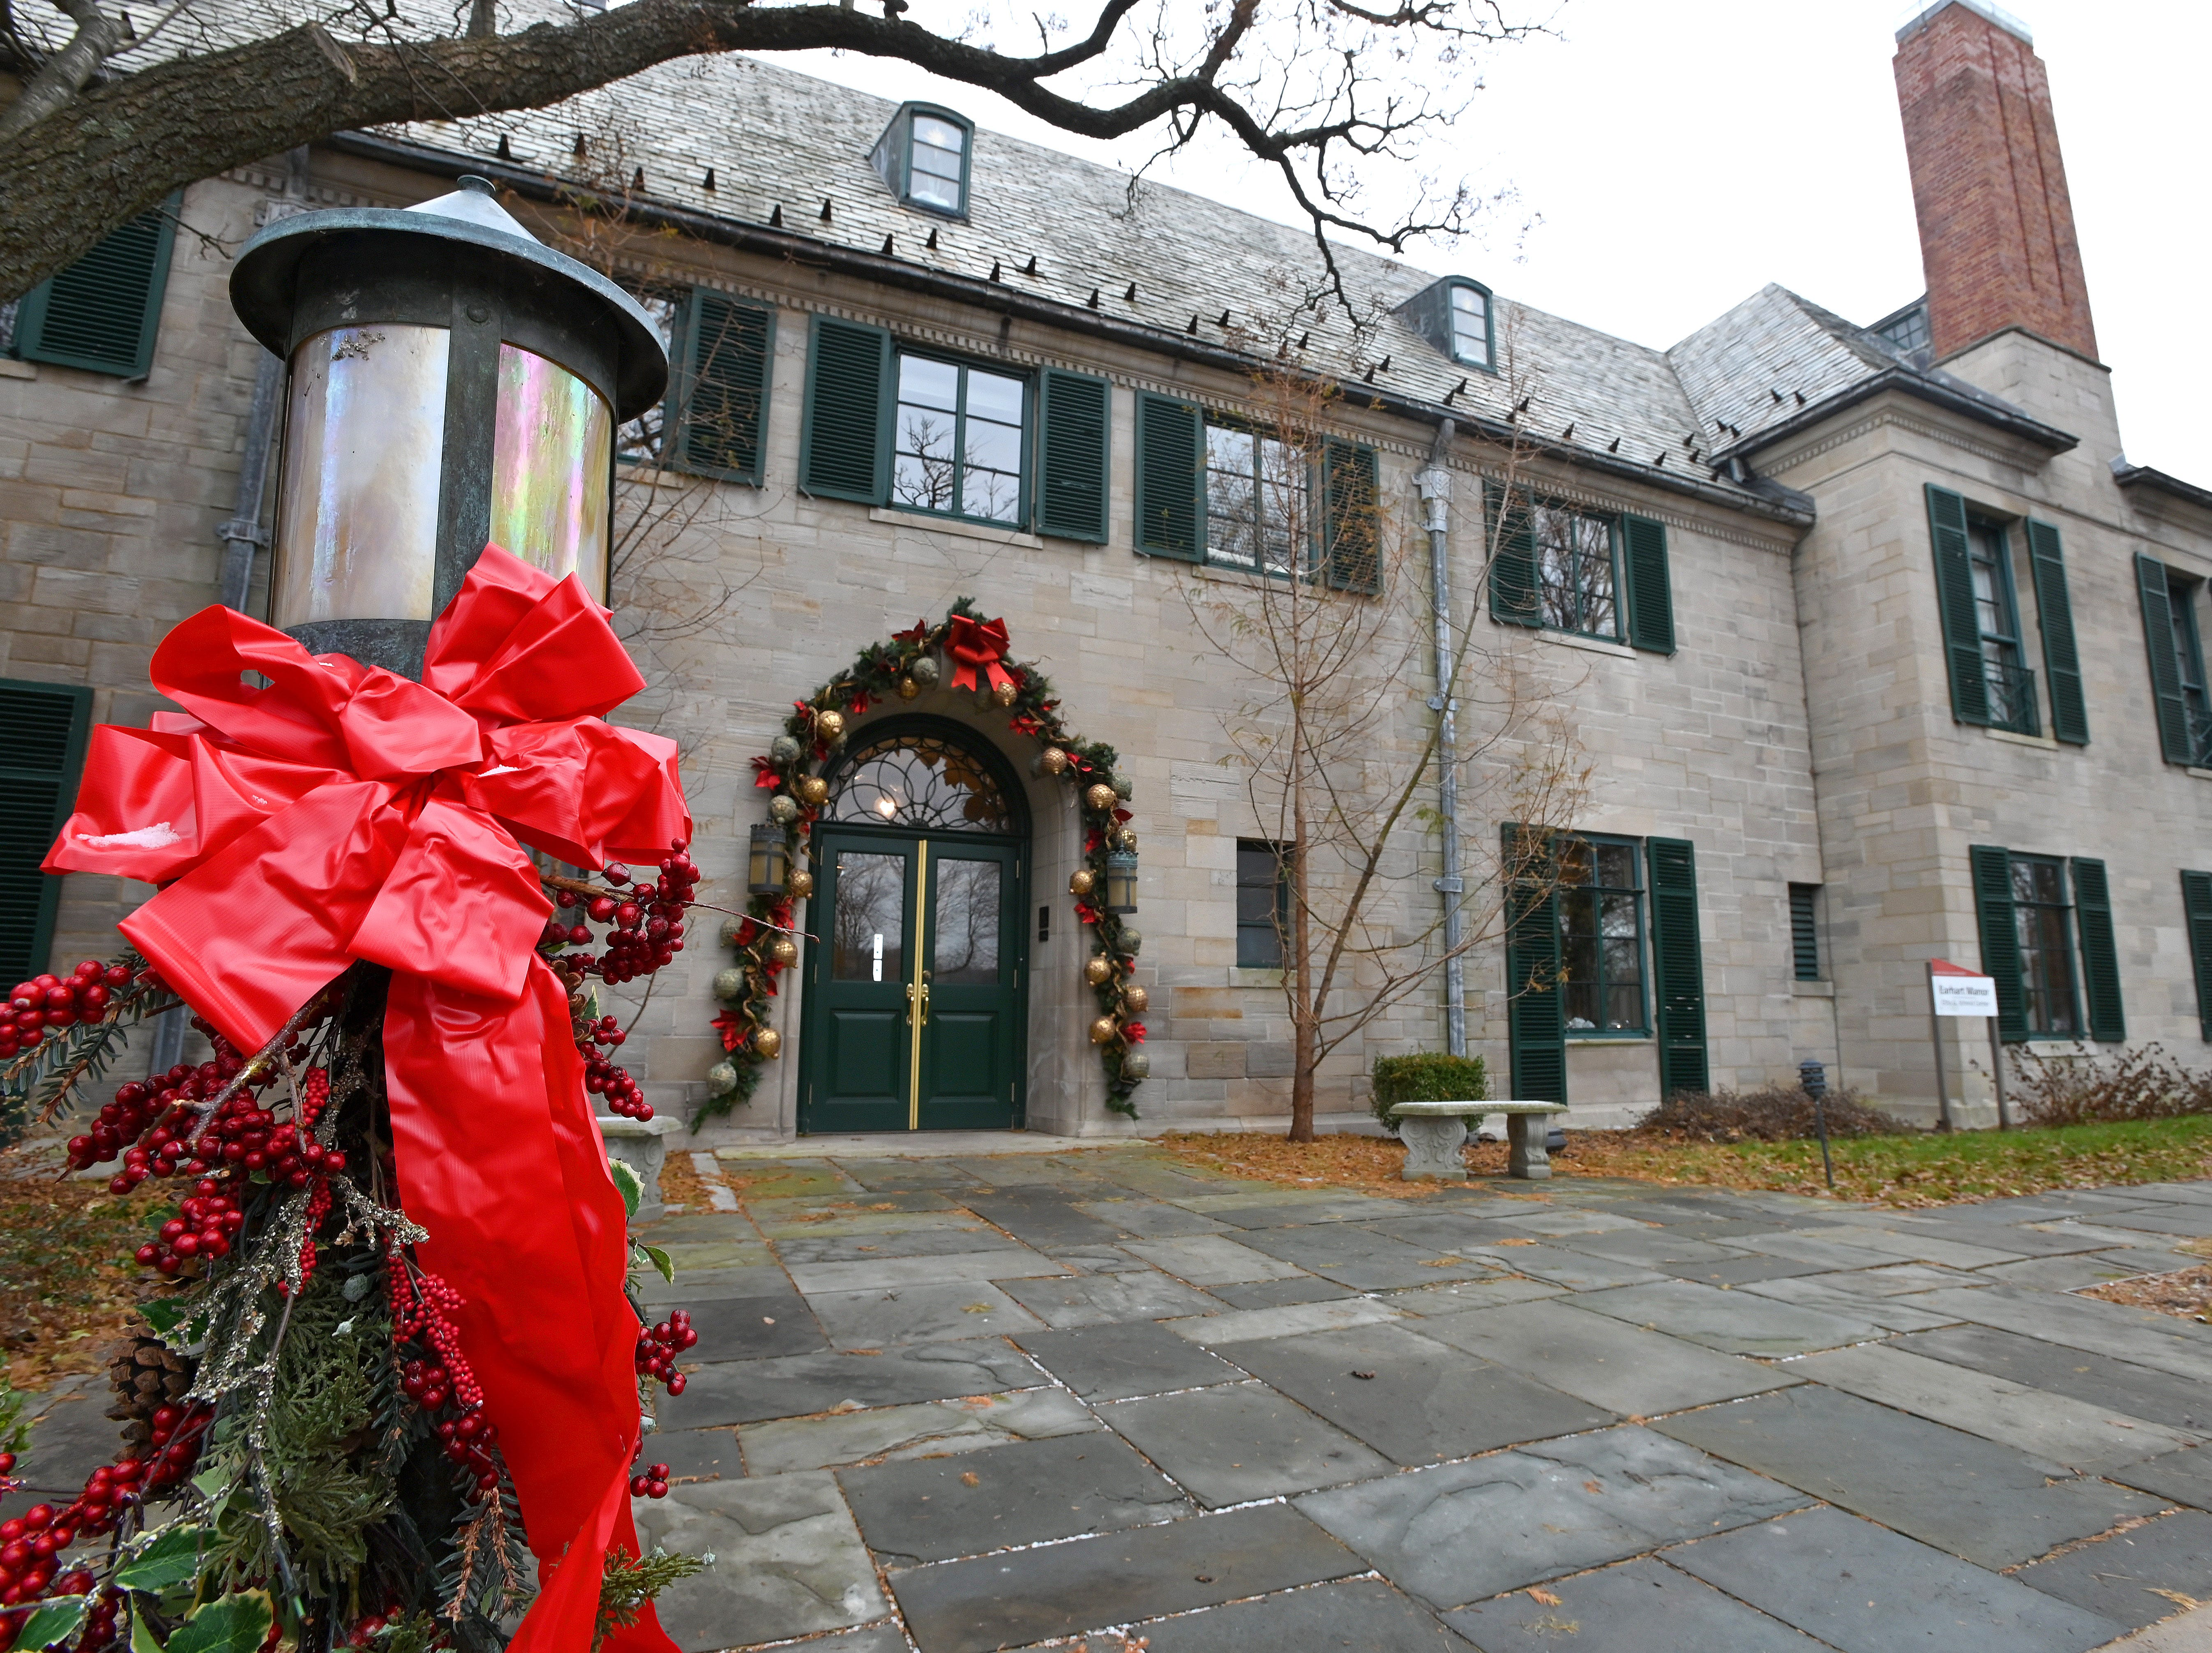 The main door to the Earhart Manor is wreathed in Christmas colors as volunteers get to work decorating the manor on the campus of Concordia University in Ann Arbor on Thursday, Nov 29, 2018.  The manor and all its Christmas decorations will be on display for visitors this weekend, Nov 30-Dec 2.